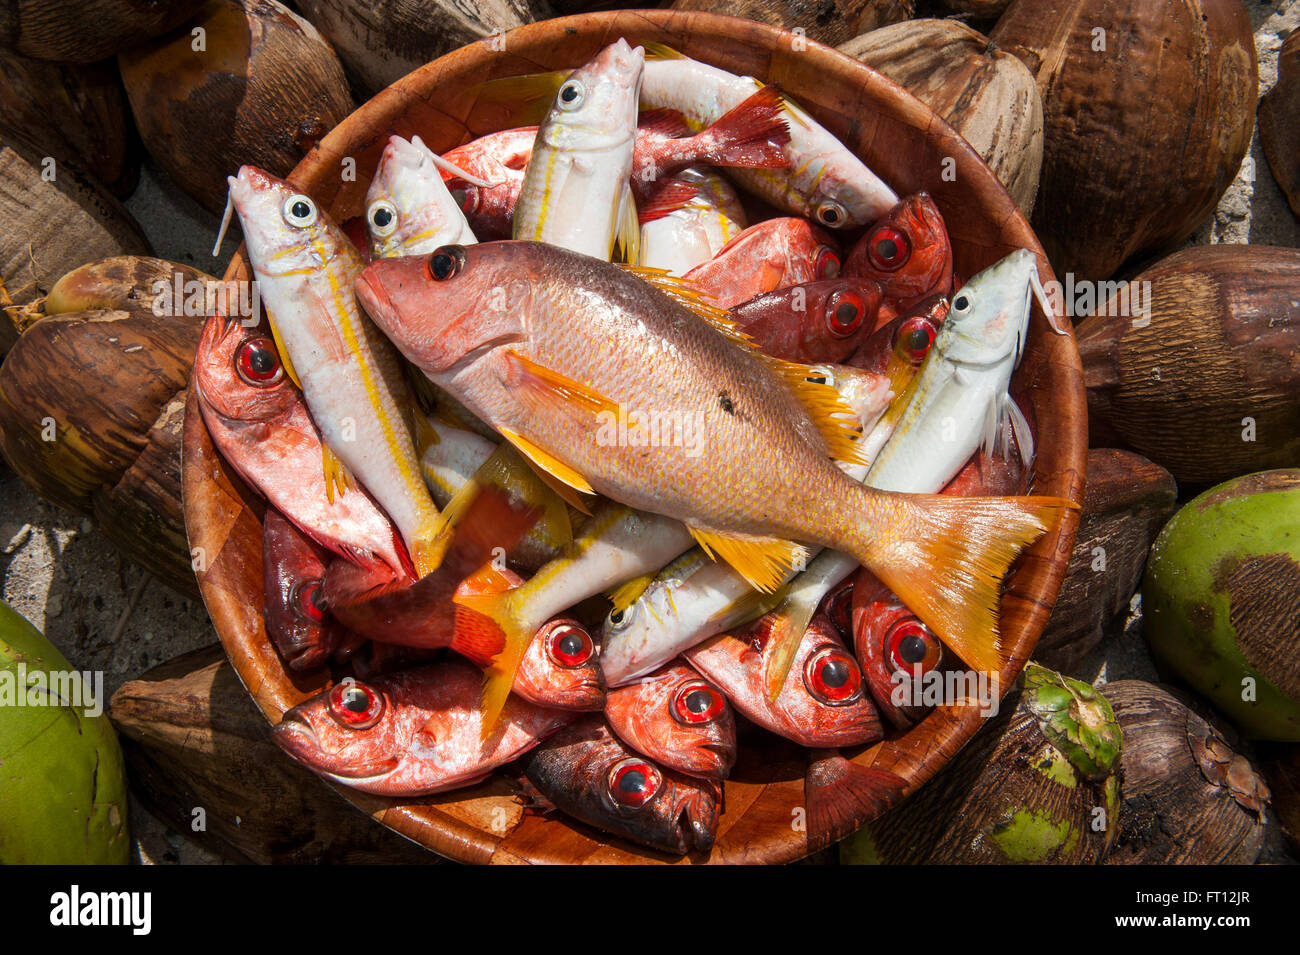 Colourful fish for sale at a market, Makemo, Tuamotu Islands, French Polynesia, South Pacific - Stock Image